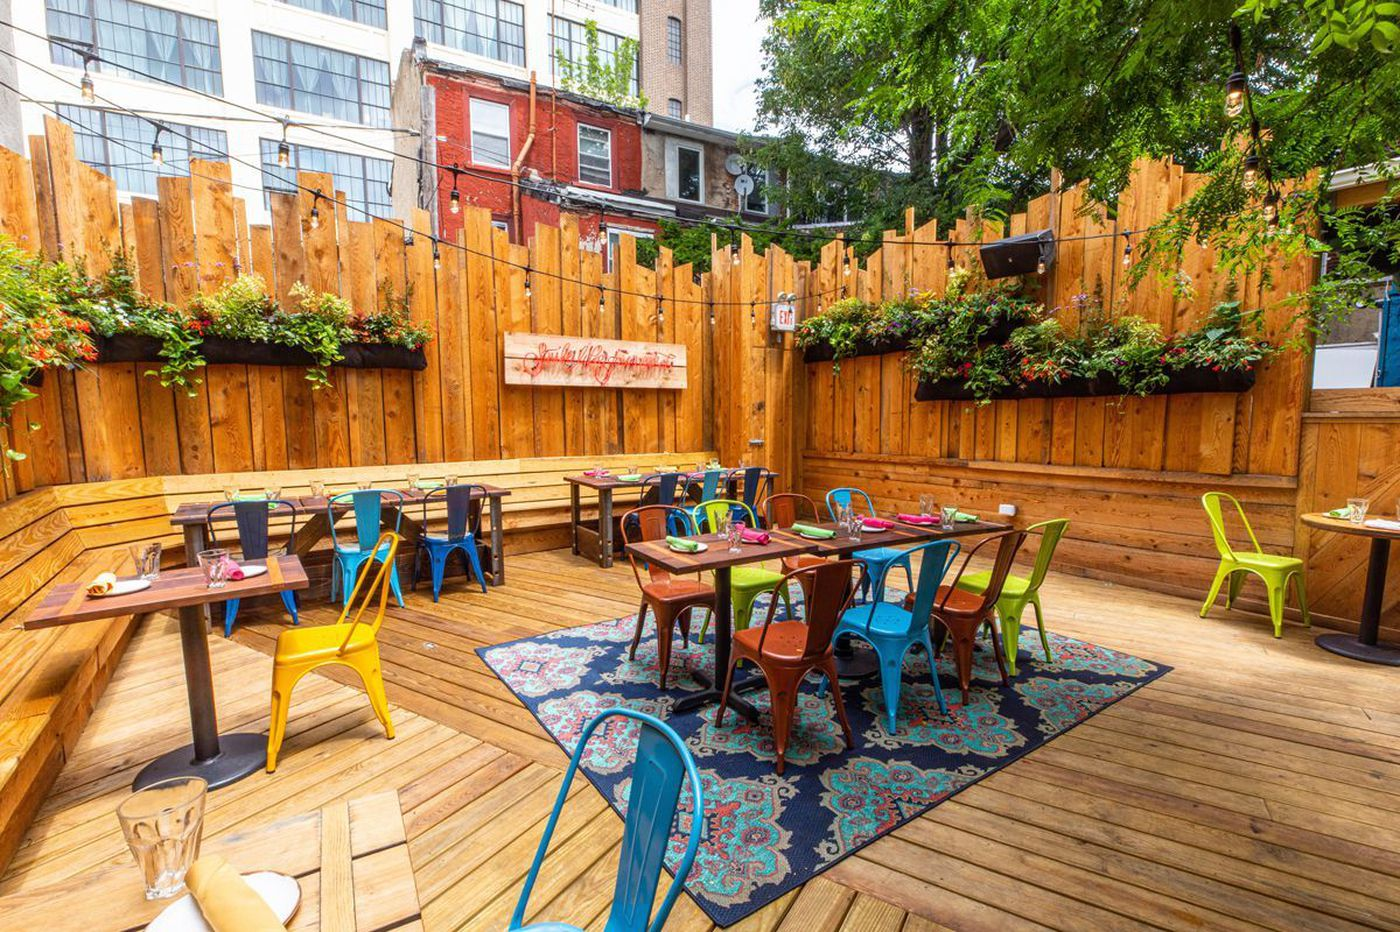 Juno brings Mexican food and drinks to Philly's outdoor dining scene